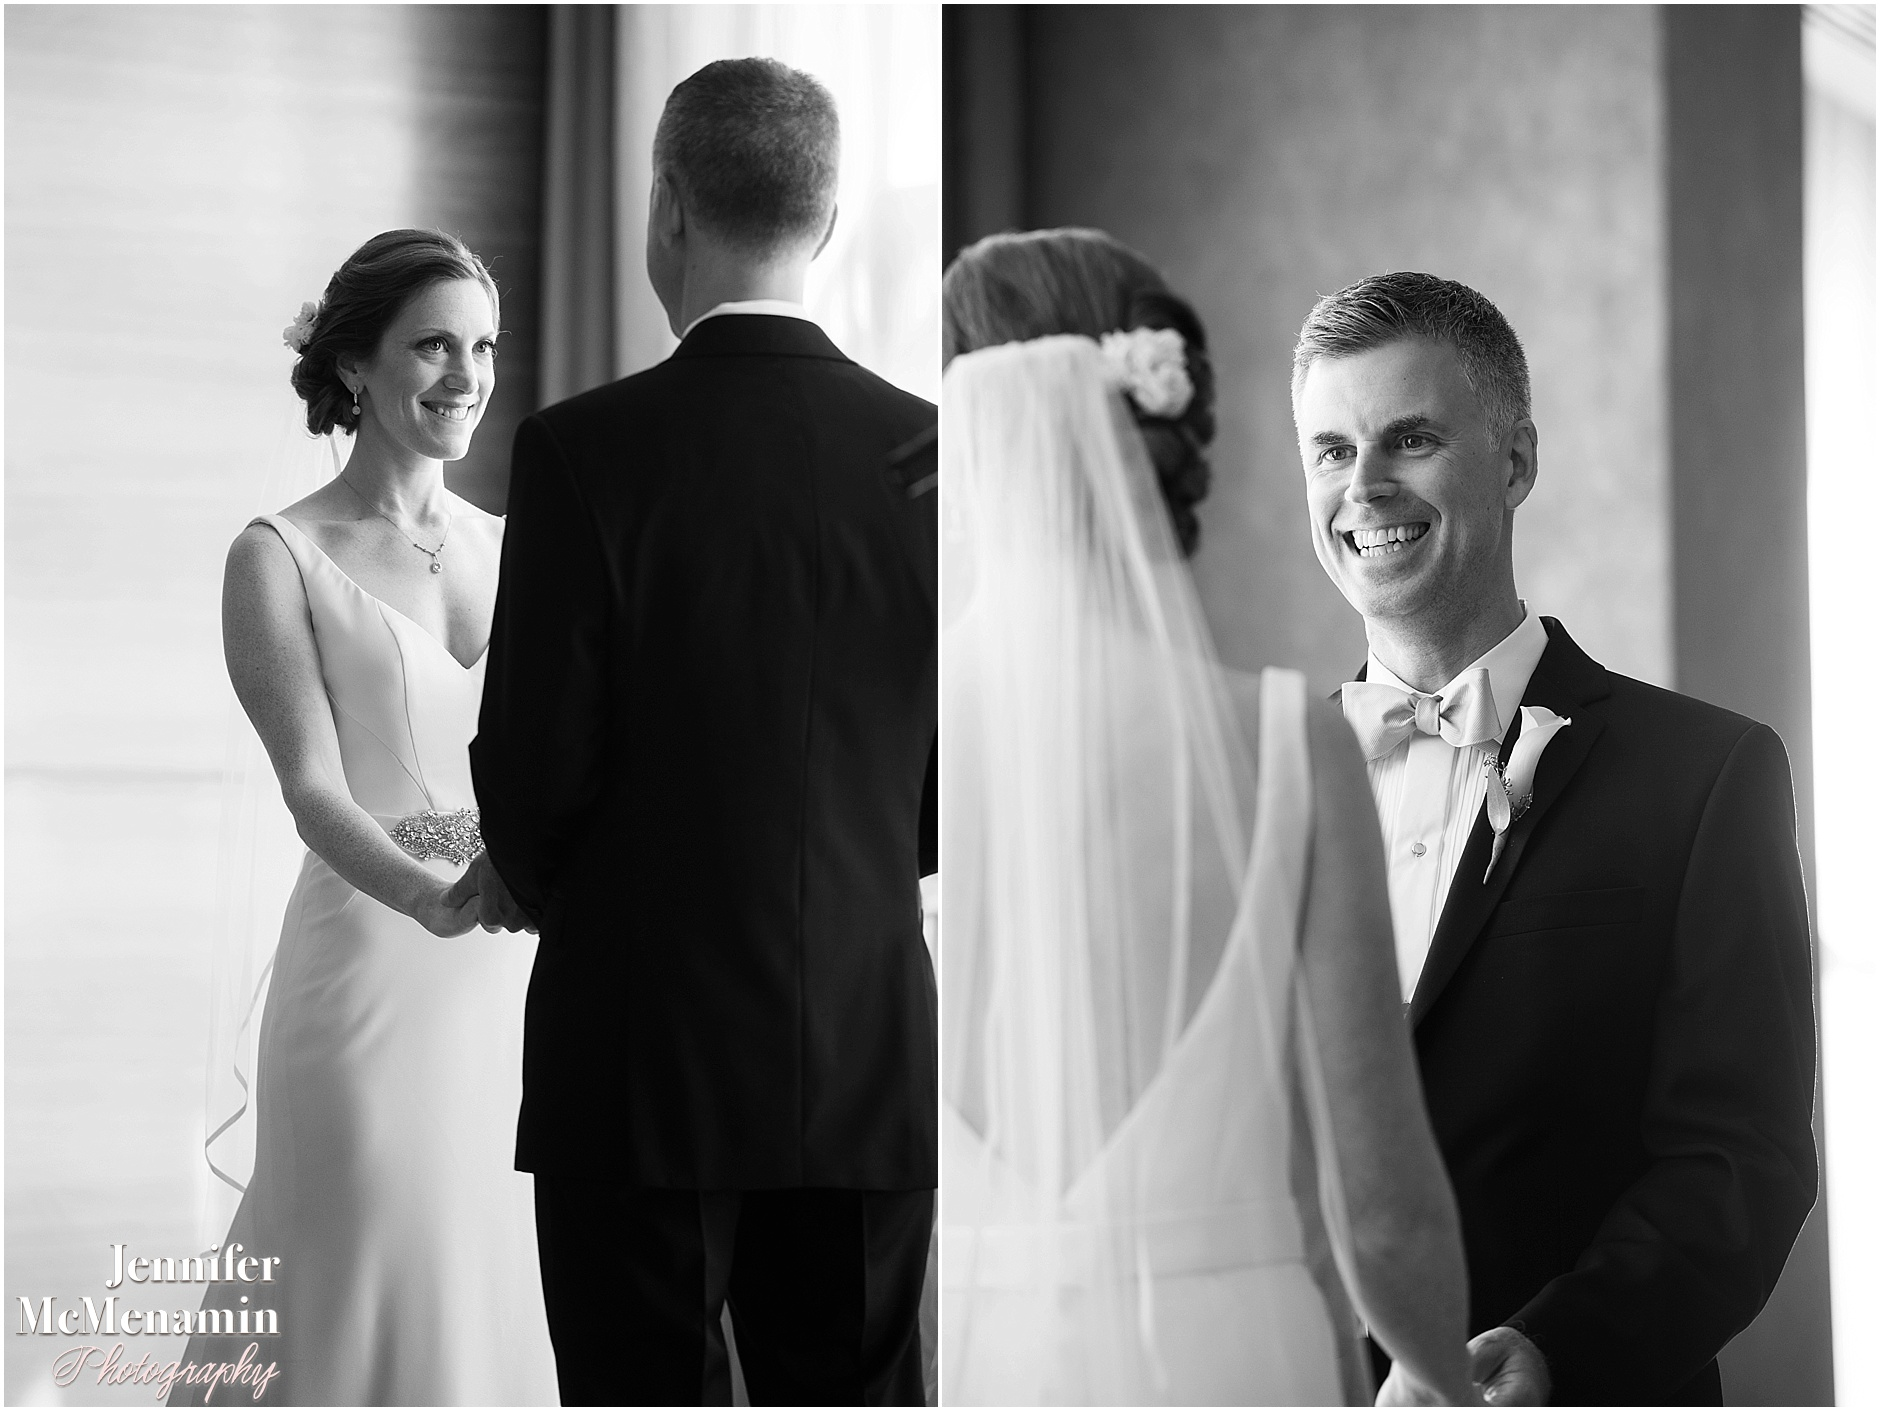 027-Four-Seasons-Baltimore-wedding-Jennifer-McMenamin-Photography